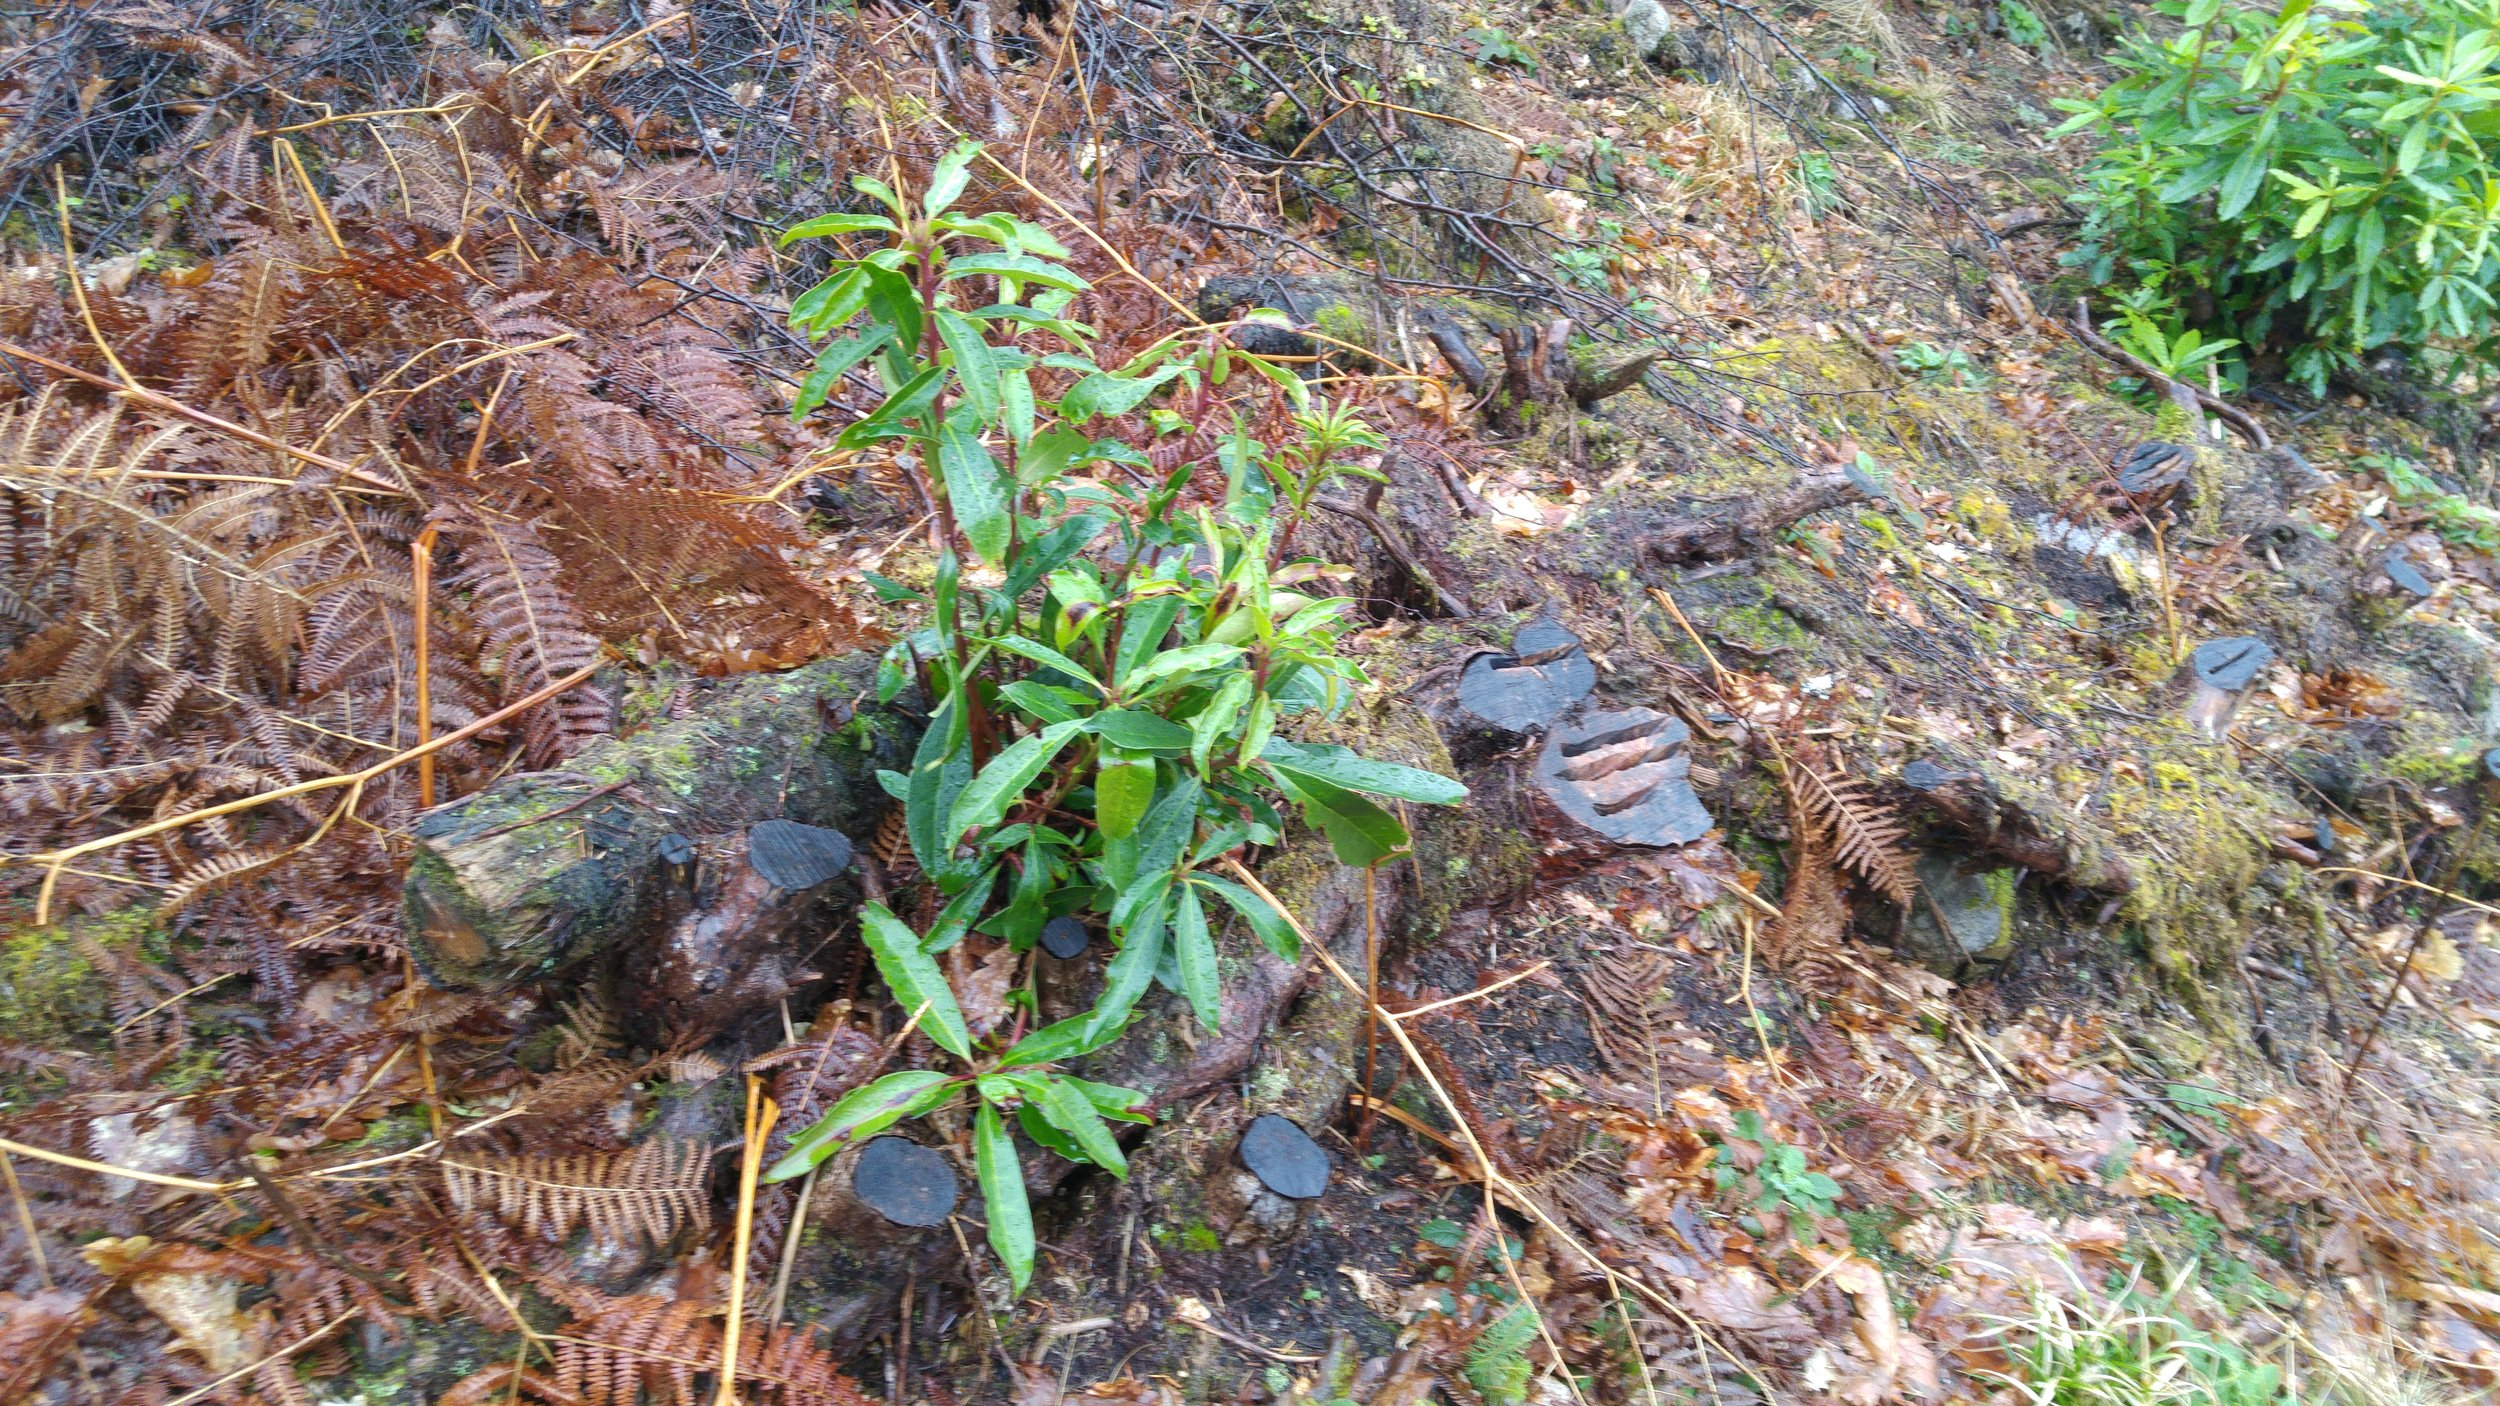 Regenerating rhododendron from a previously cut stump